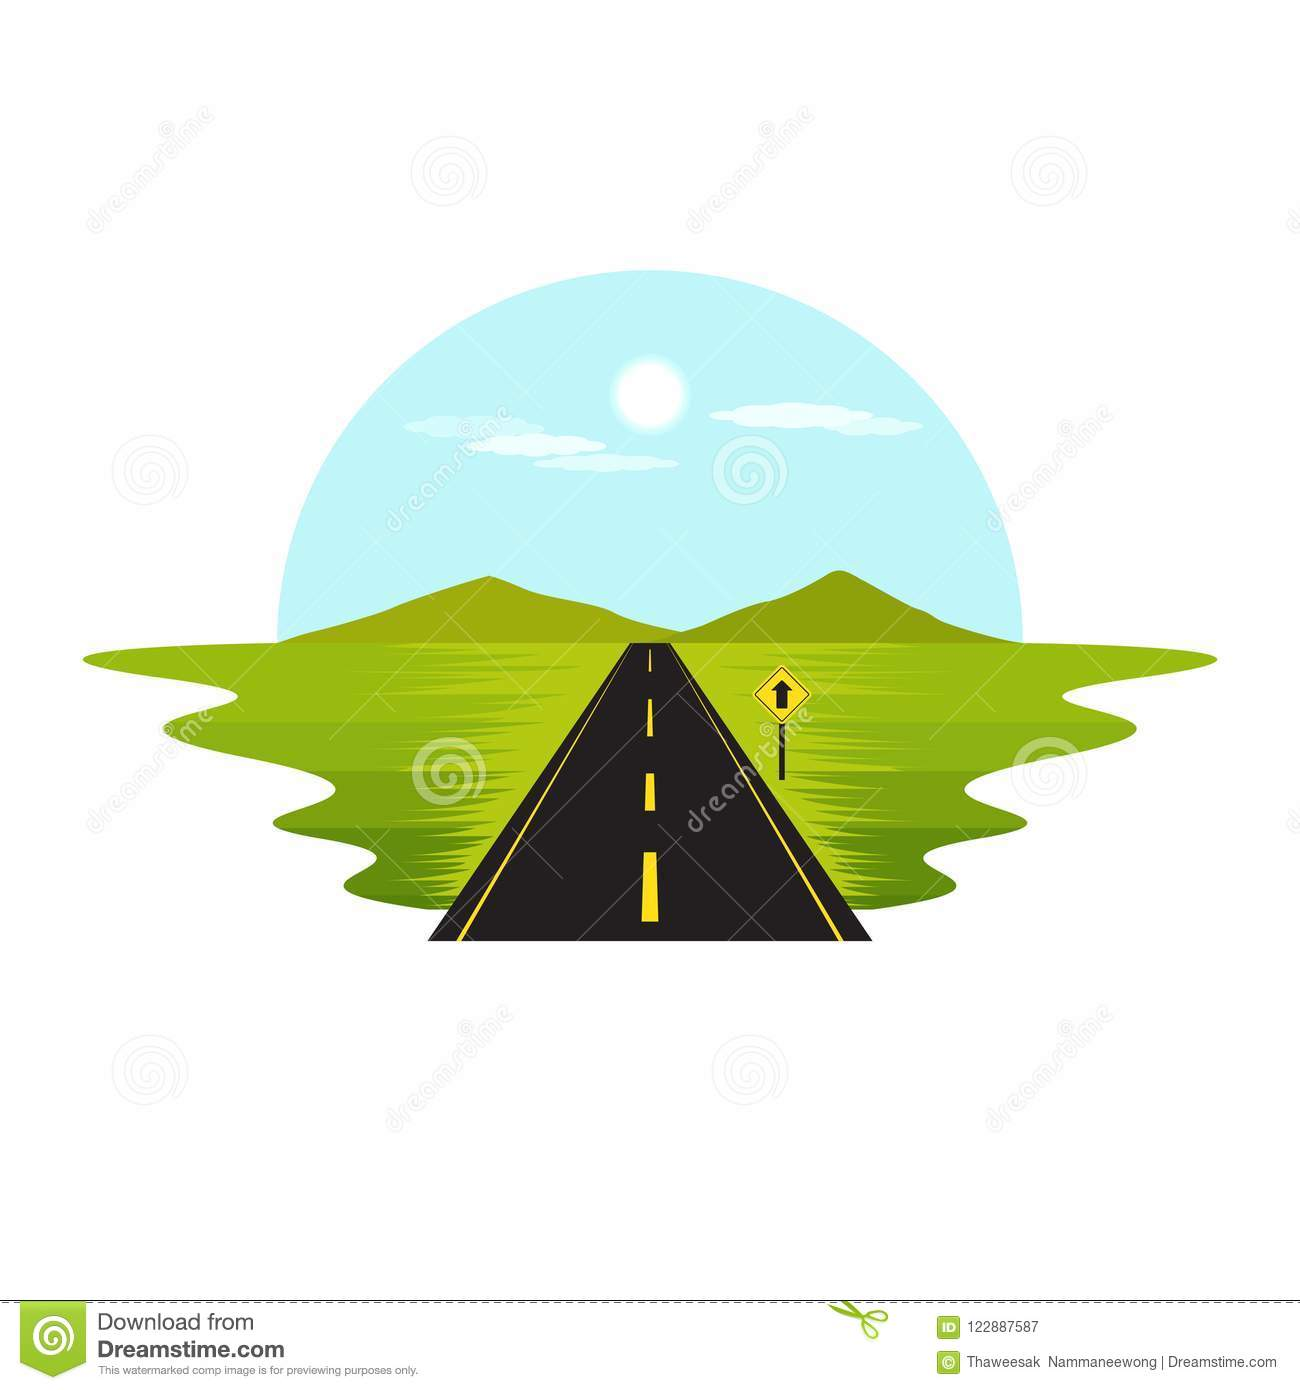 Road Route on The Way Day and Sign Landscape